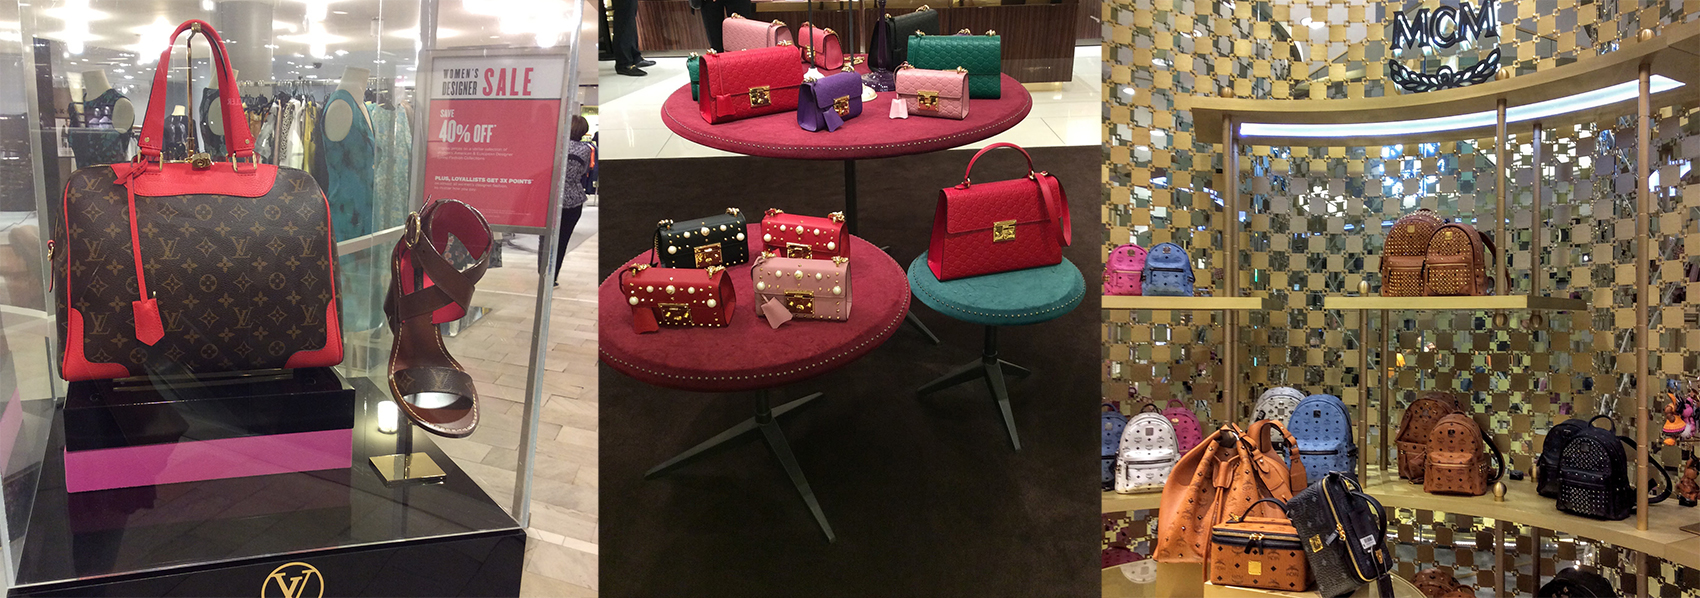 Louis Vuitton Gucci Mcm In Trends At Bloomingdale S Fashion Trendsetter